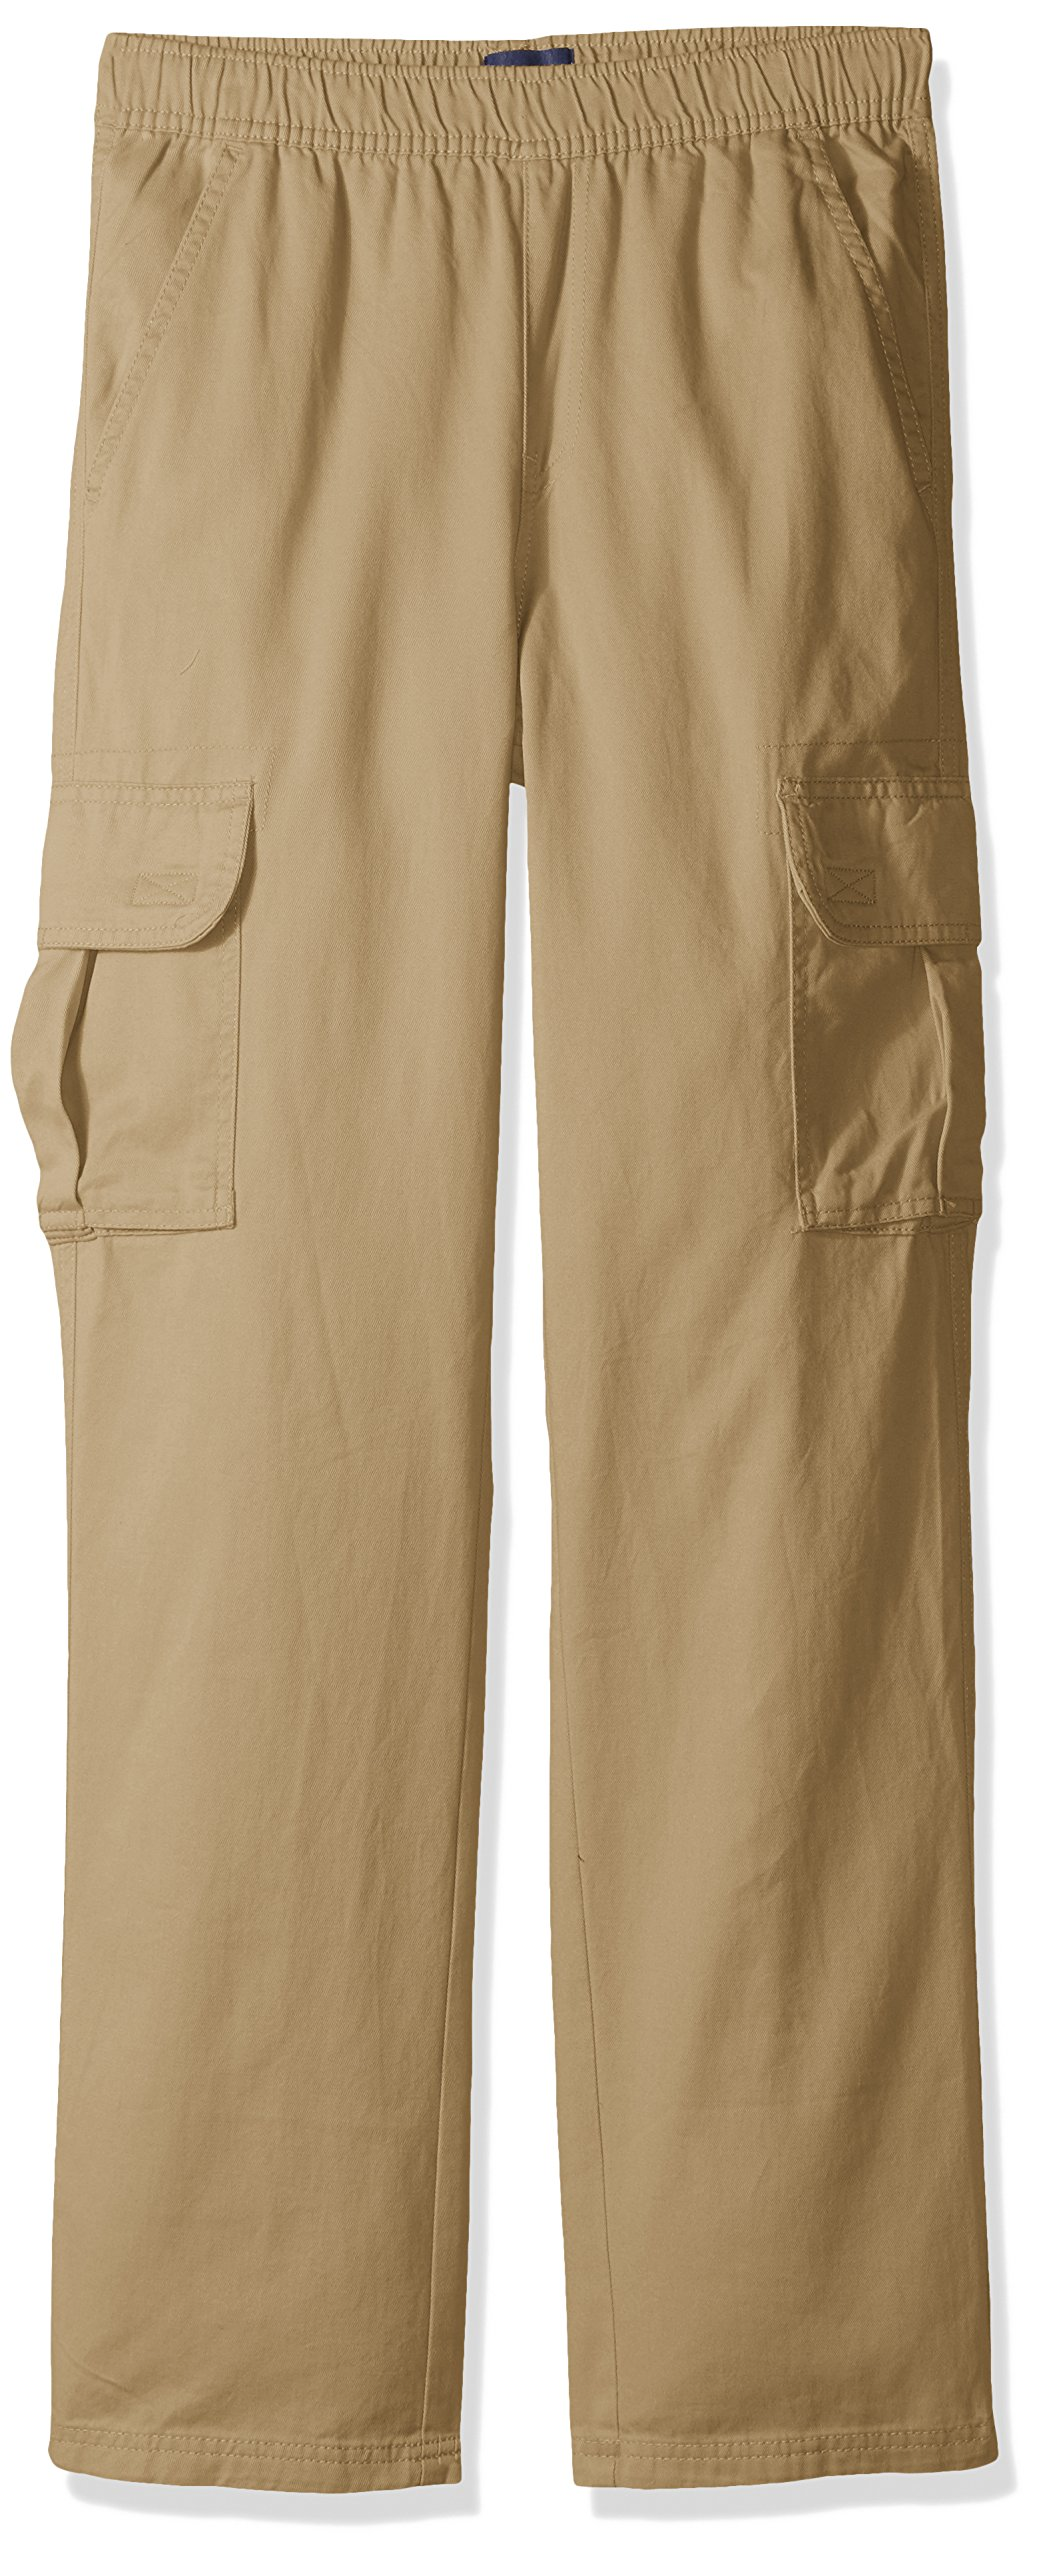 The Children's Place Big Boys' Pull-on Cargo Pant, Flax, 16H